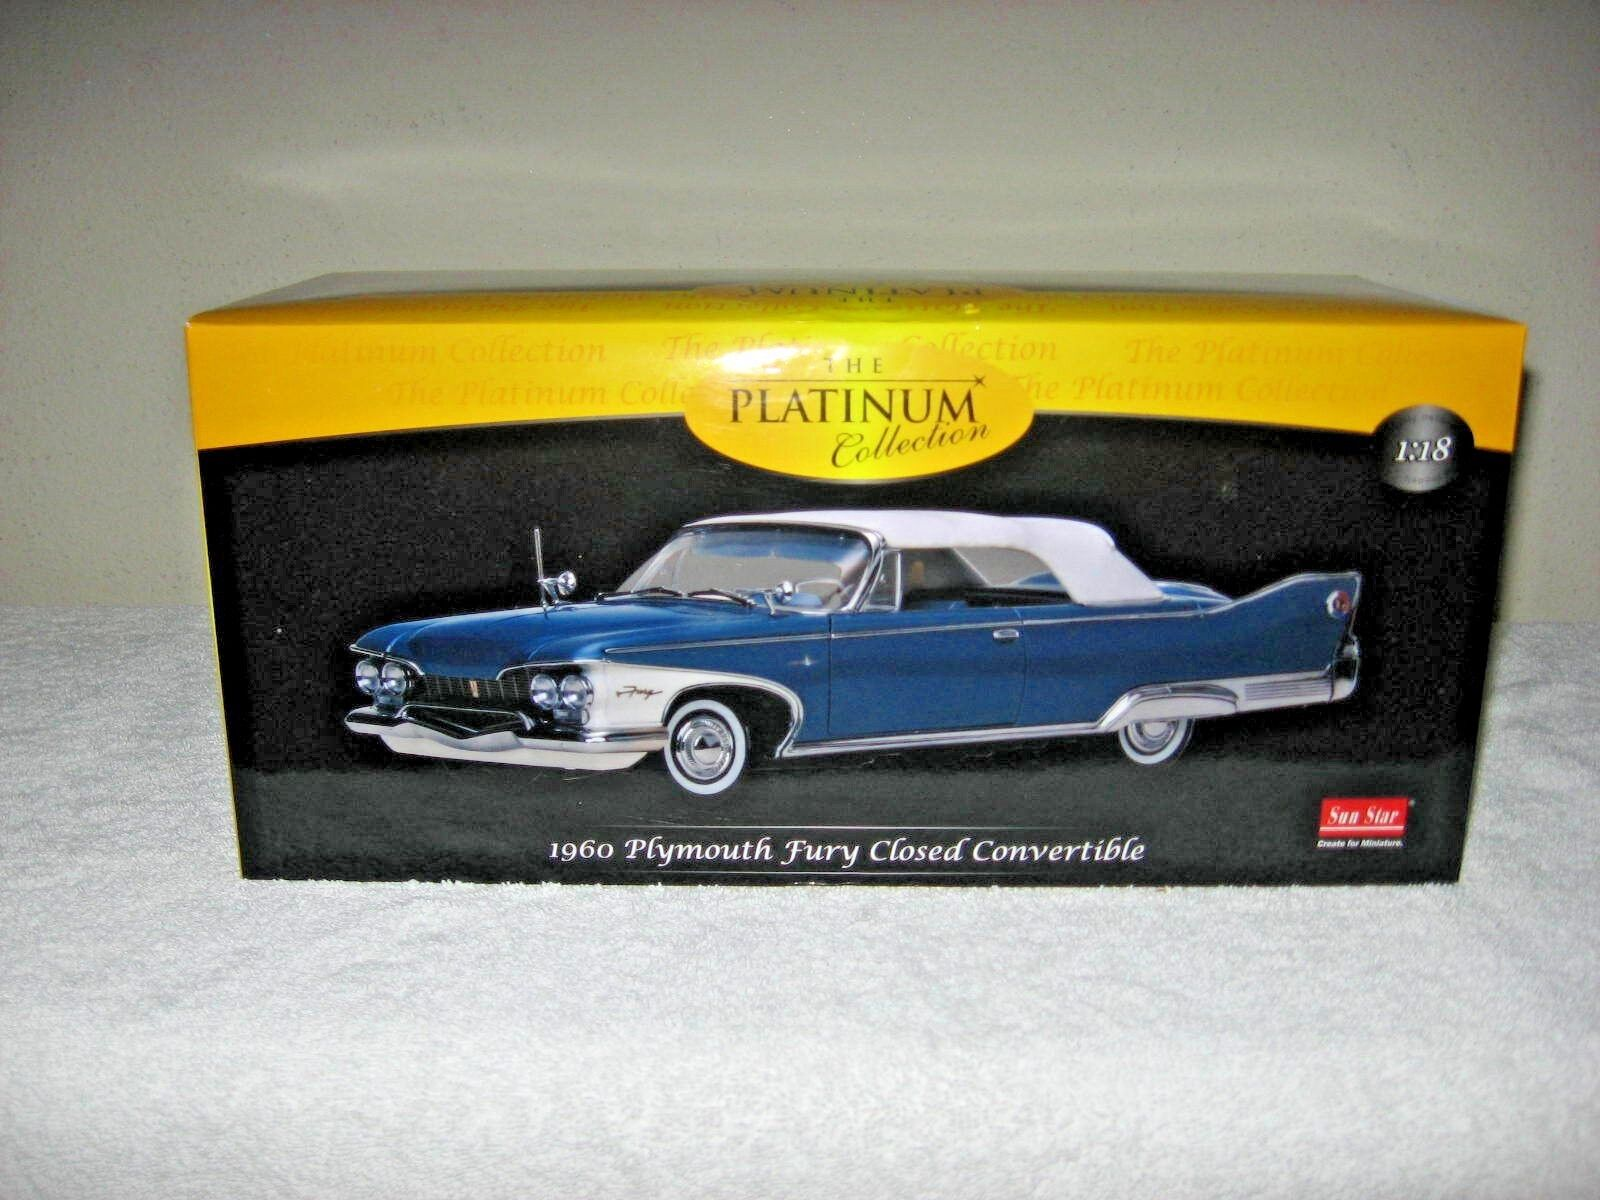 1960 PLYMOUTH FURY CLOSED CONVERTIBLE blu 1:18 HI DETAIL PLATINUM SUN STAR